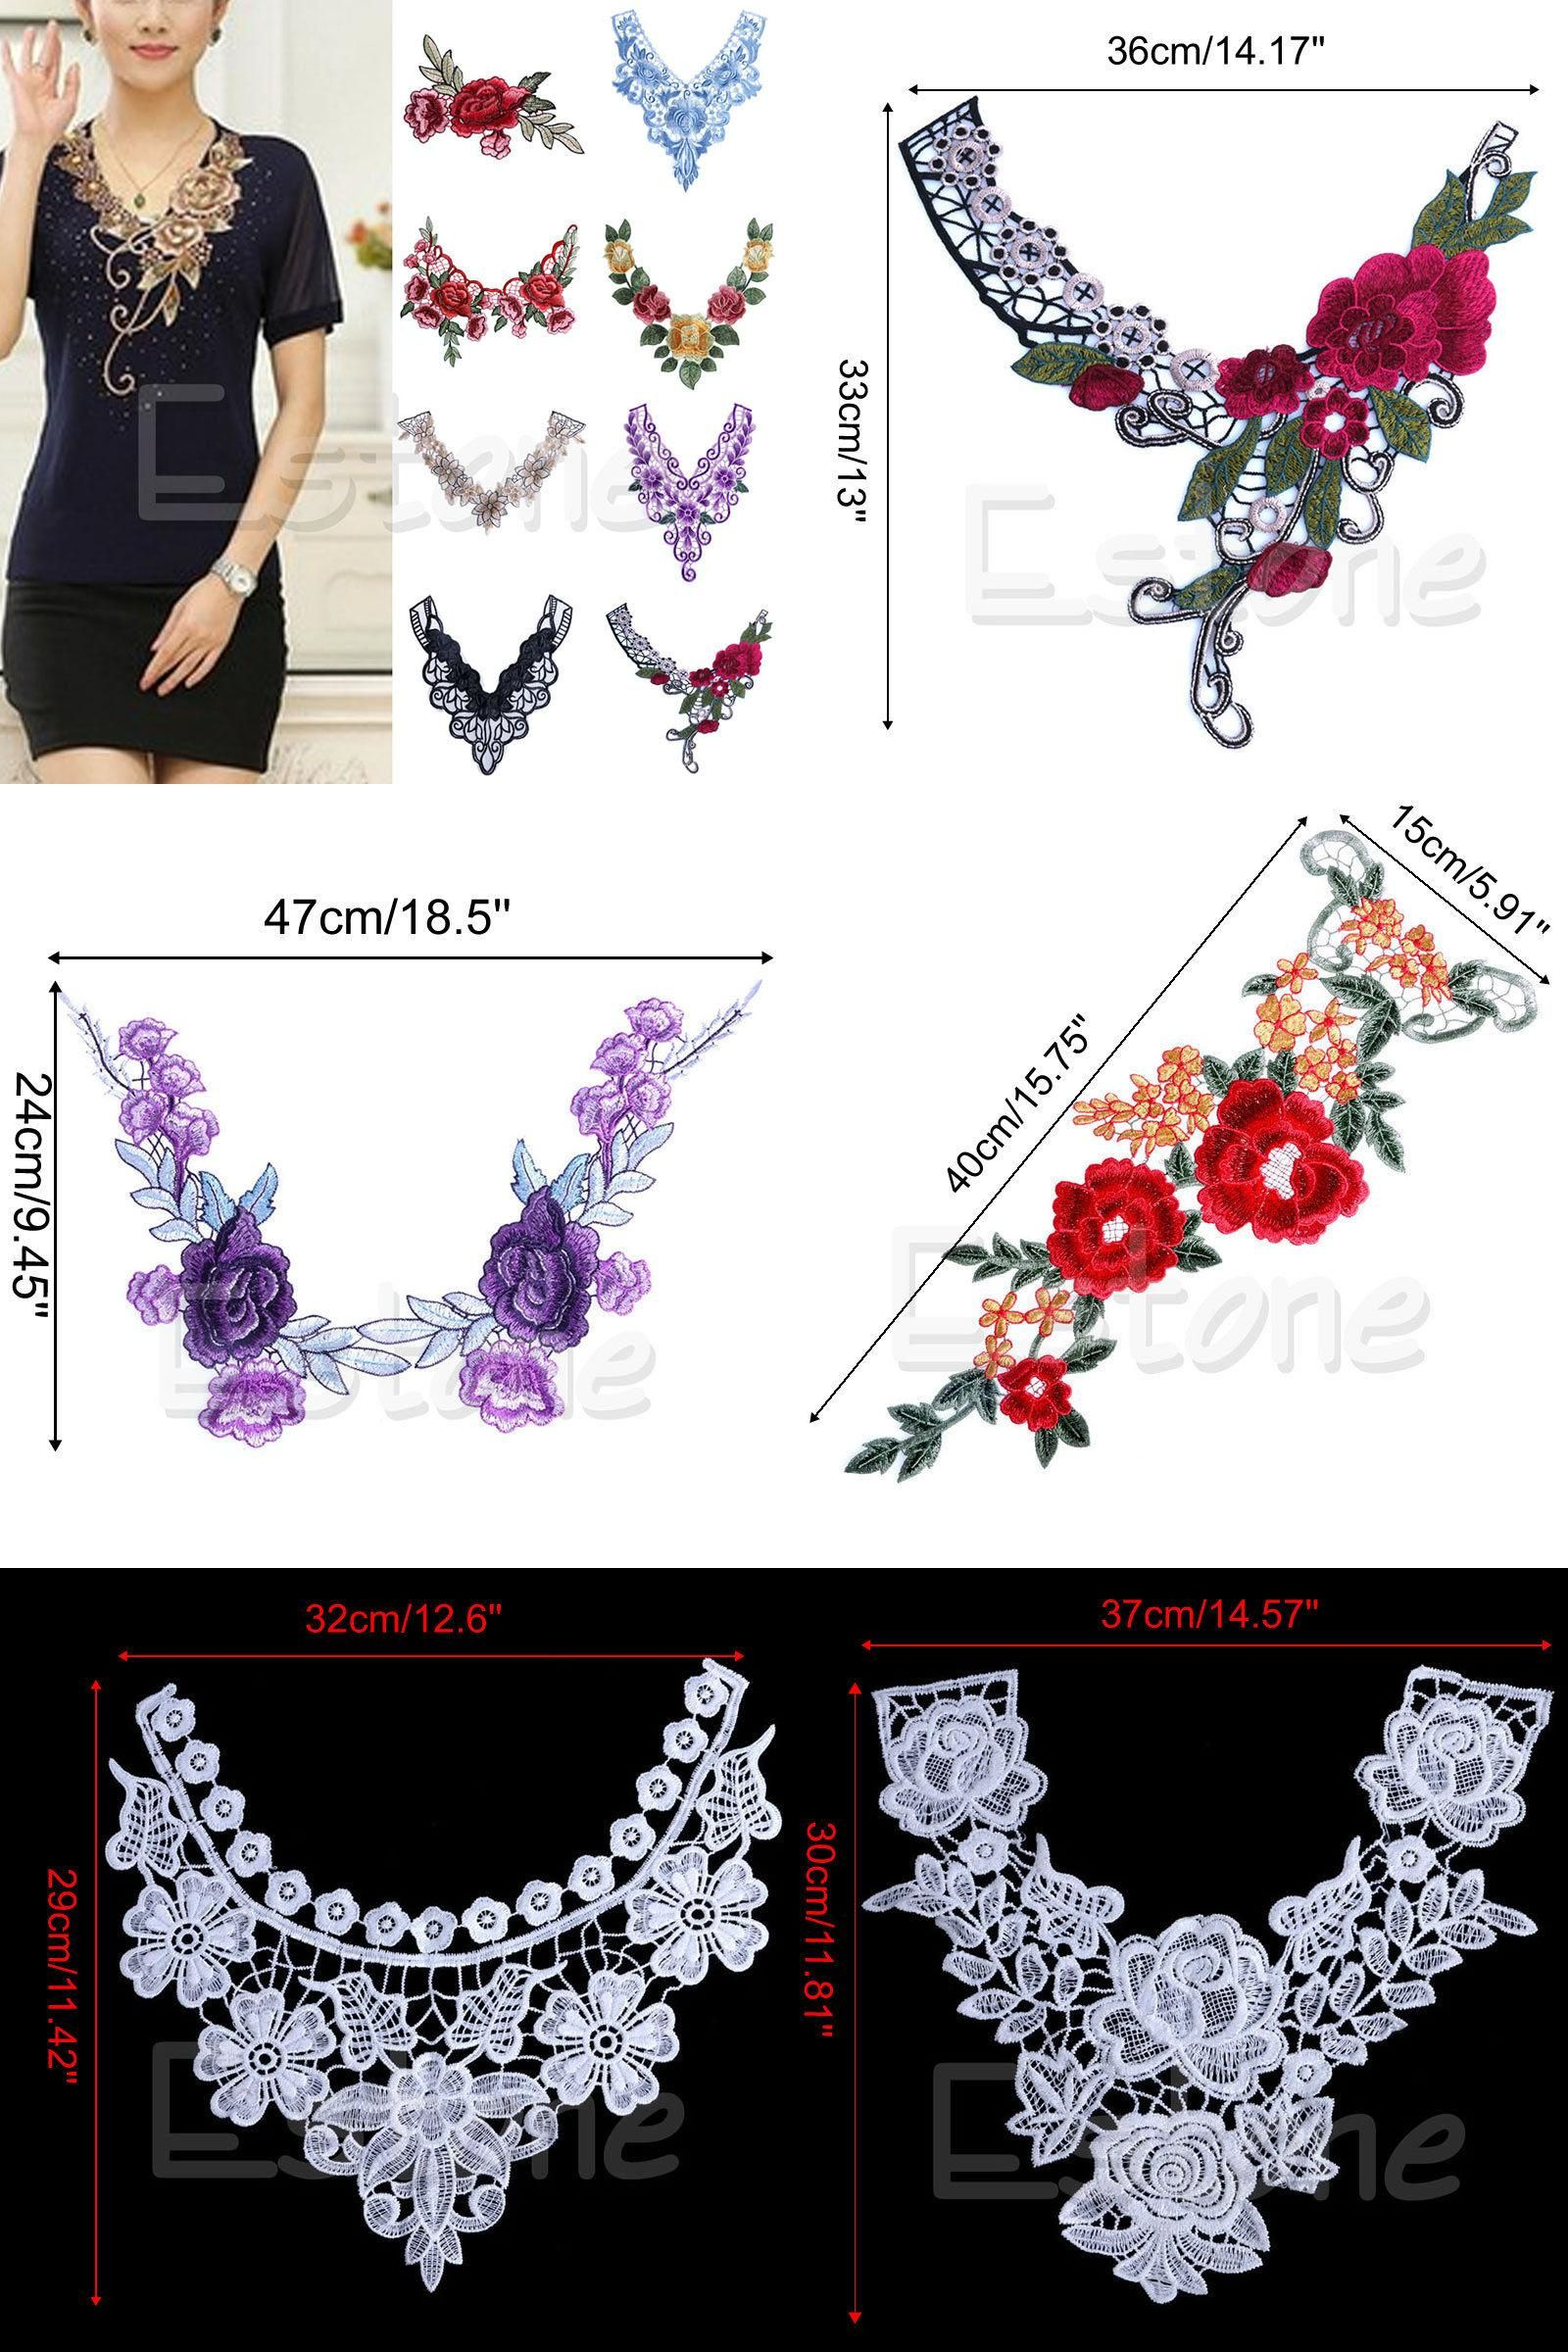 Lace Embroidered Floral Neckline Neck Collar Trim Clothes Sewing Applique Crafts